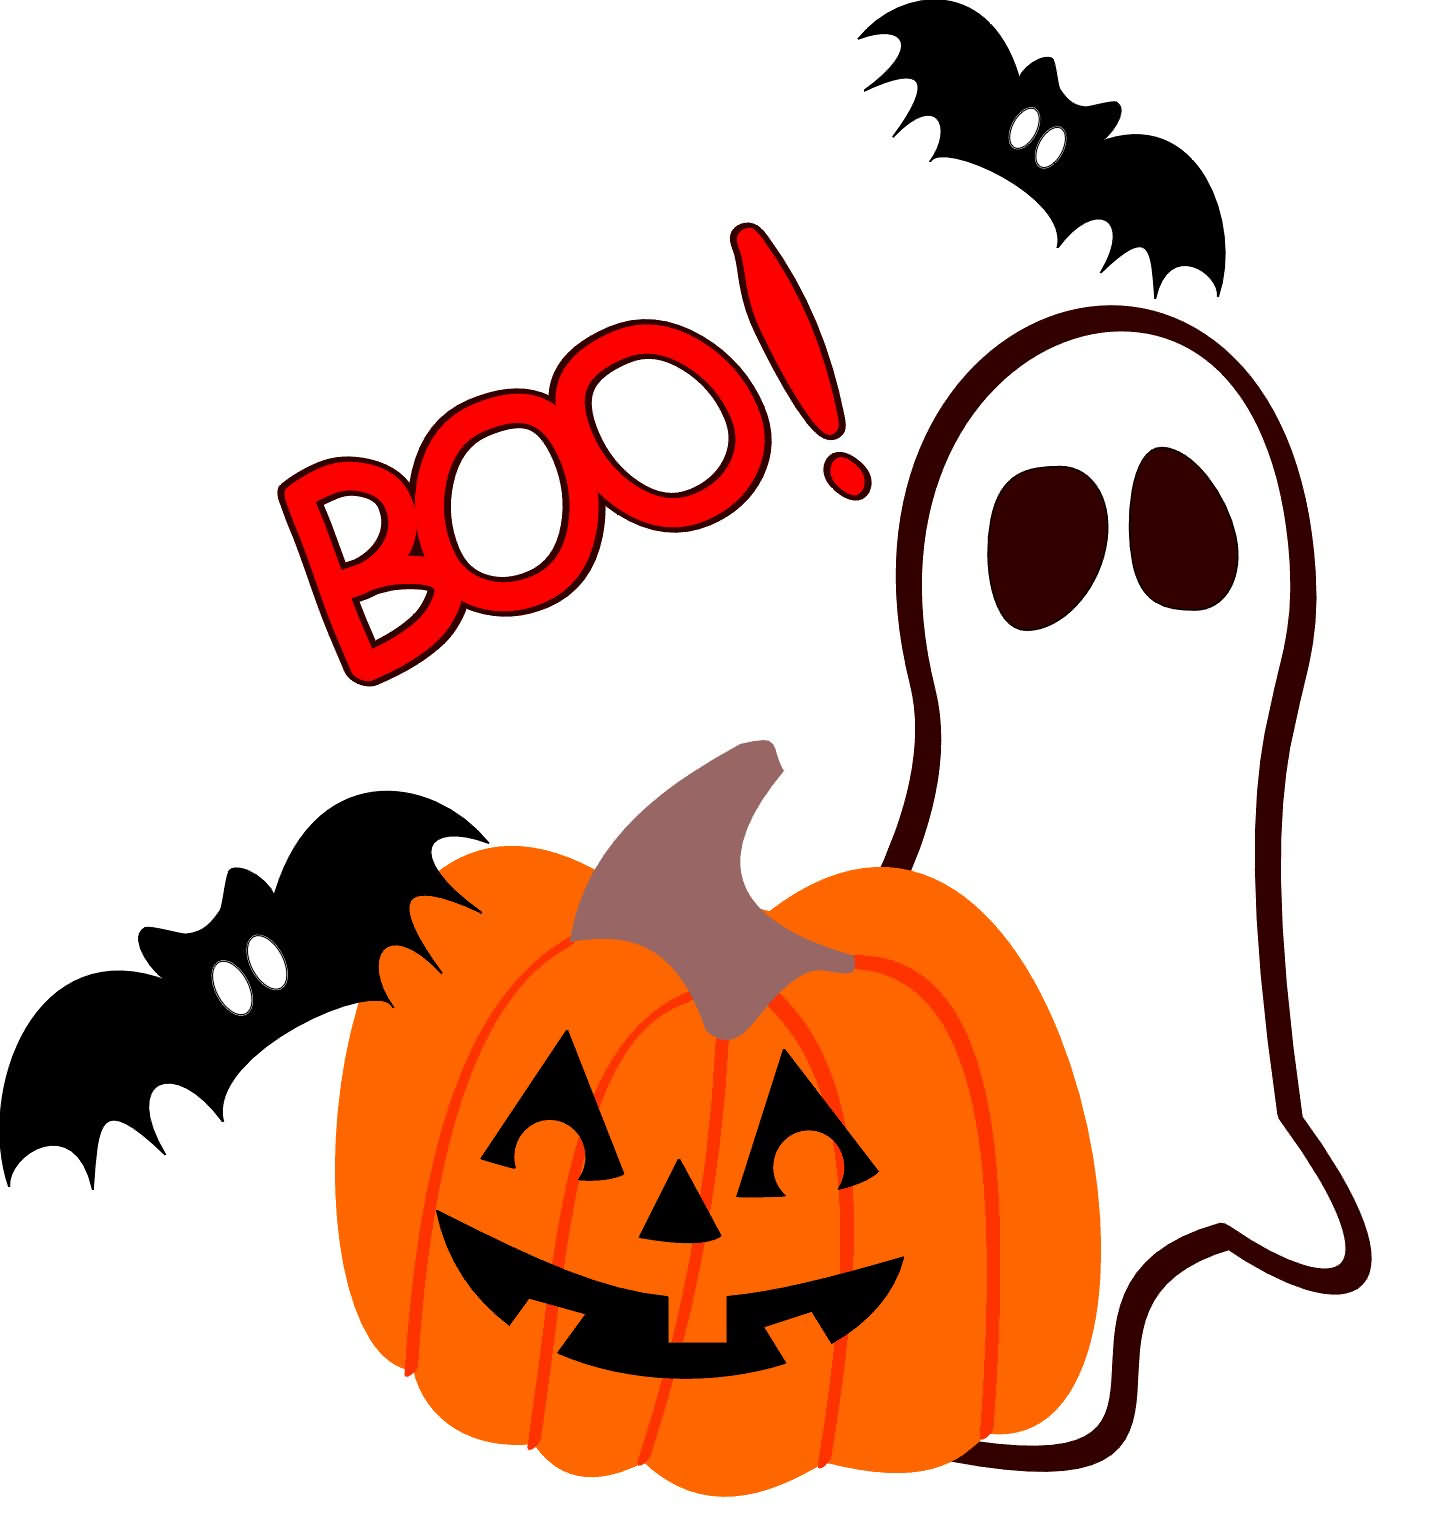 Somthing Scary You Halloween Day 2020